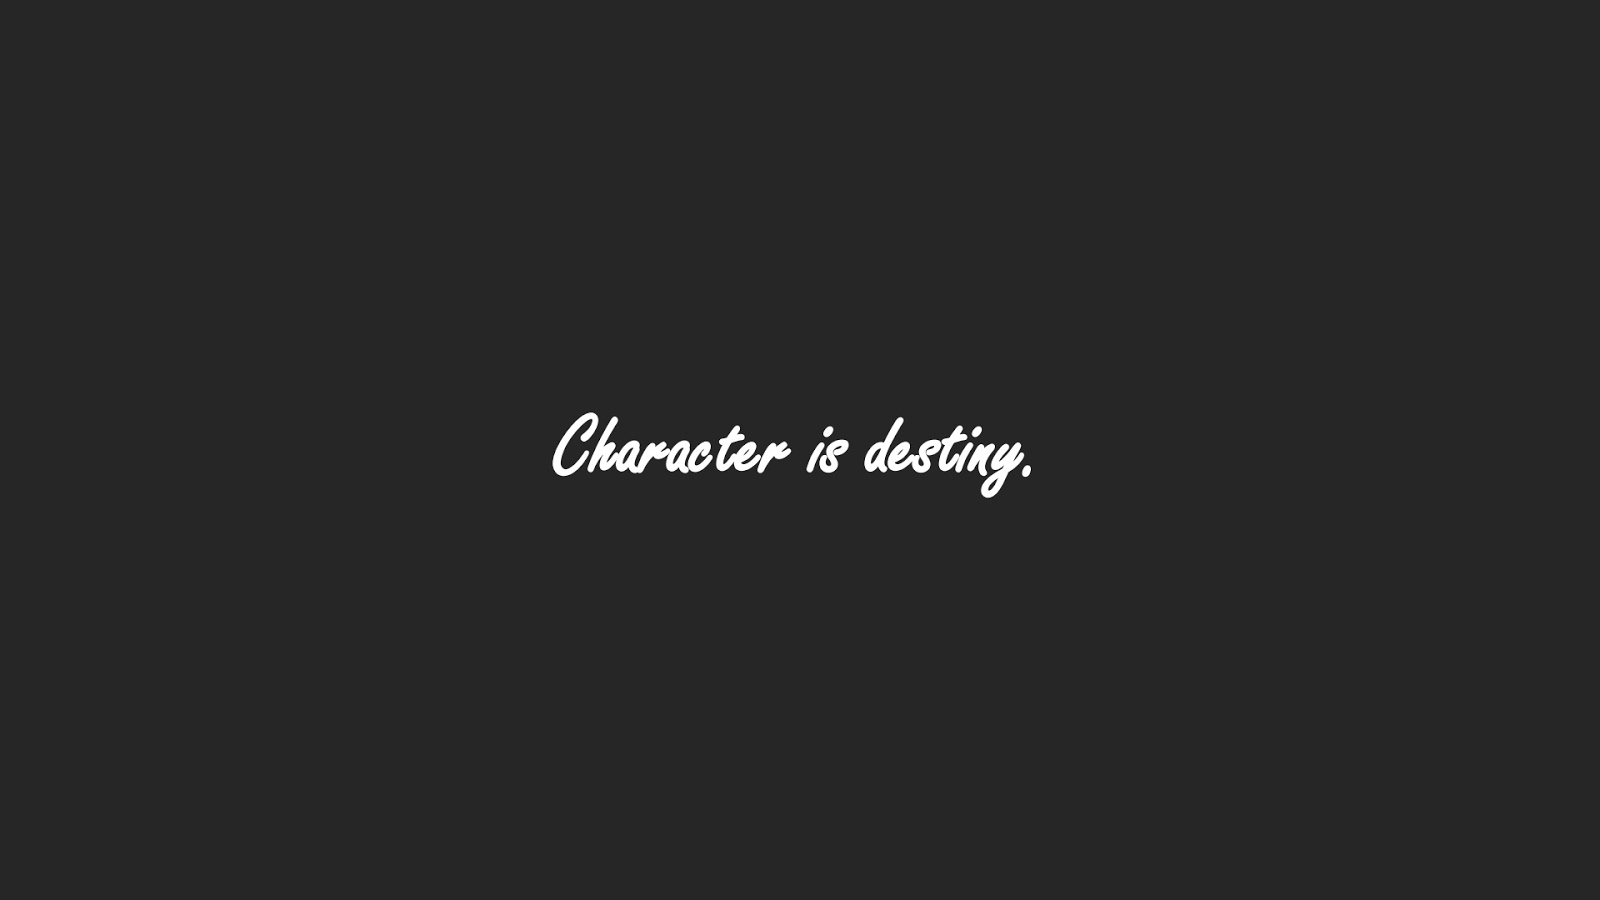 Dark Grey Computer Wallpaper with 15 Word Quotes - Wallpaper Caption